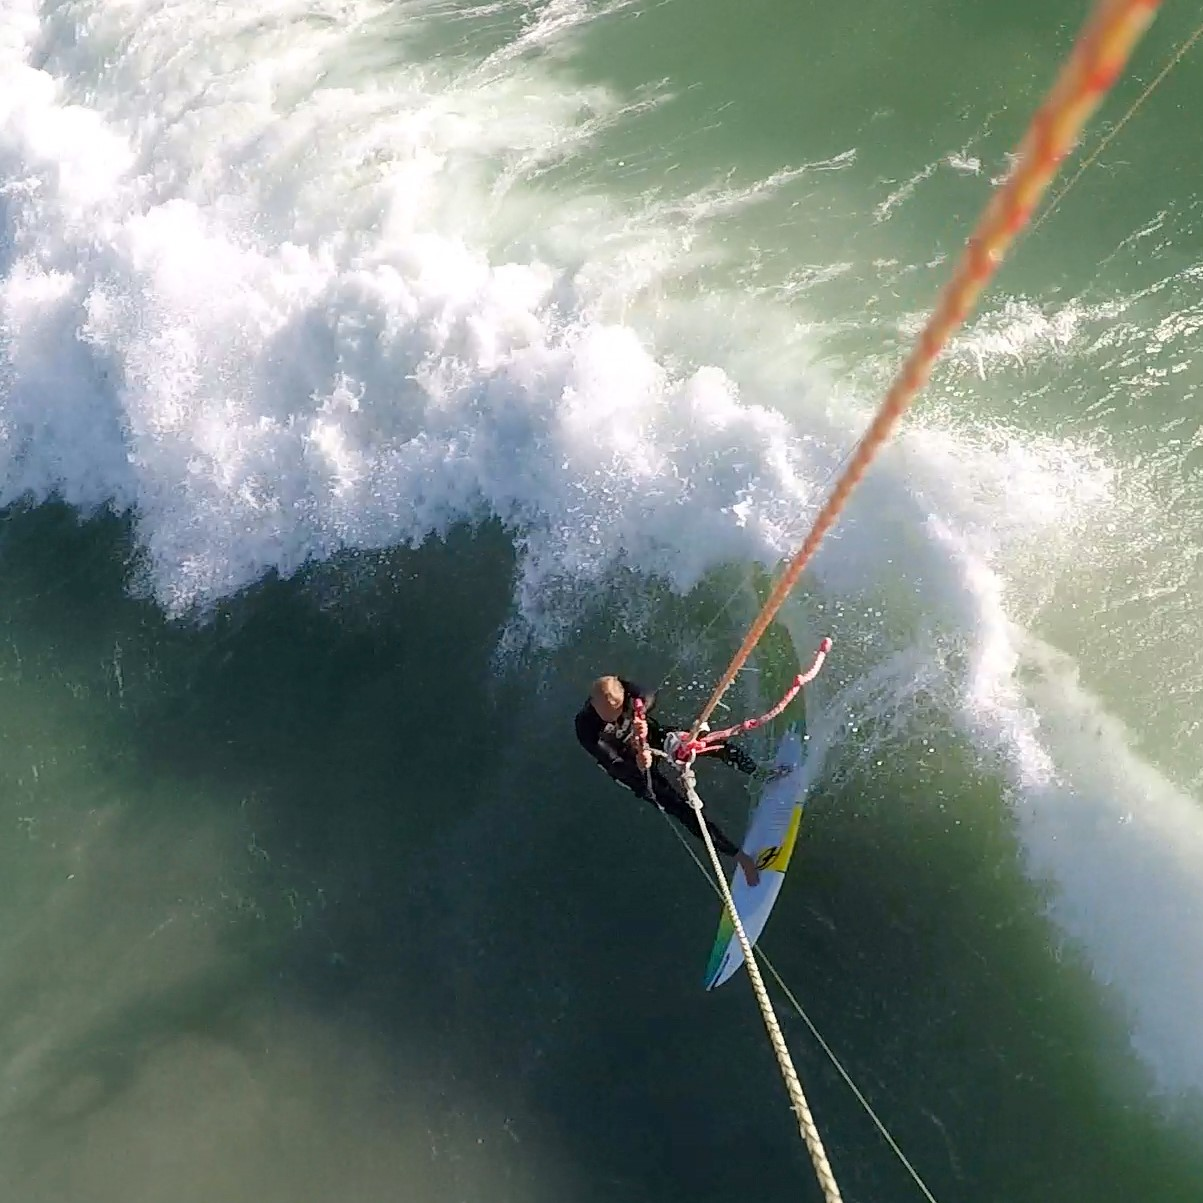 Kitesurfing fuels my professional career, Jacob Petersen, Level 5 Consultant and Partner in Implement Consulting Group.